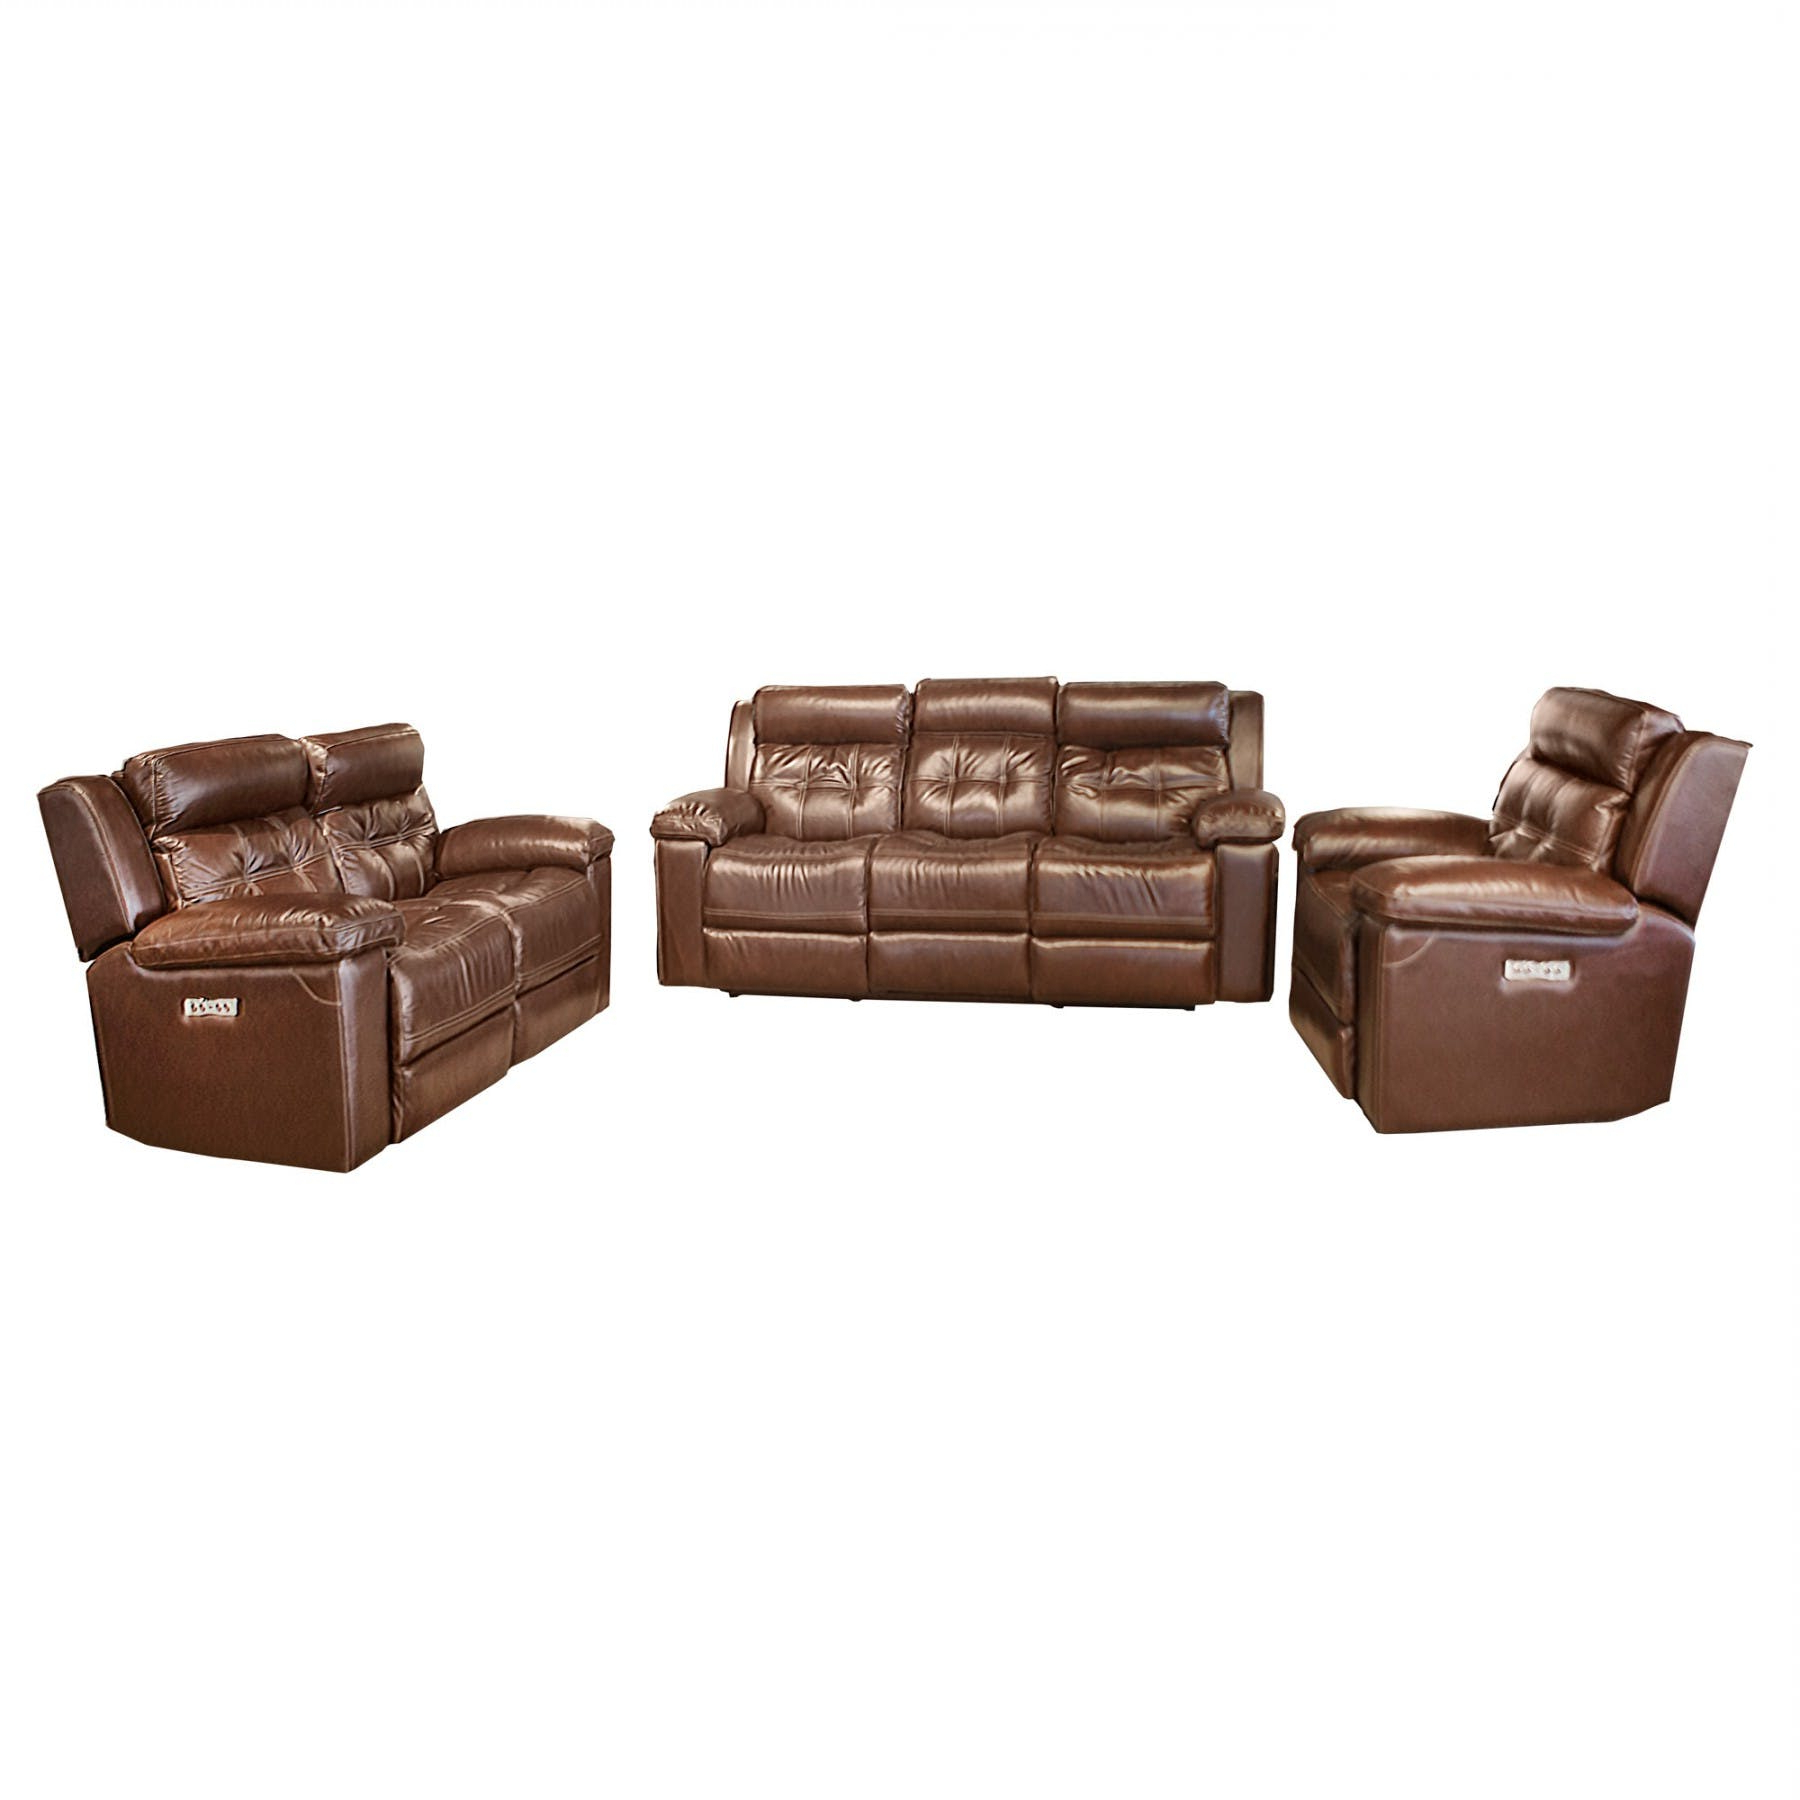 Waylon 3 Piece Power Reclining Sectionals Intended For Famous Archer Davenport Power Reclining Sofa With Power Headrest – Bernie (View 19 of 20)